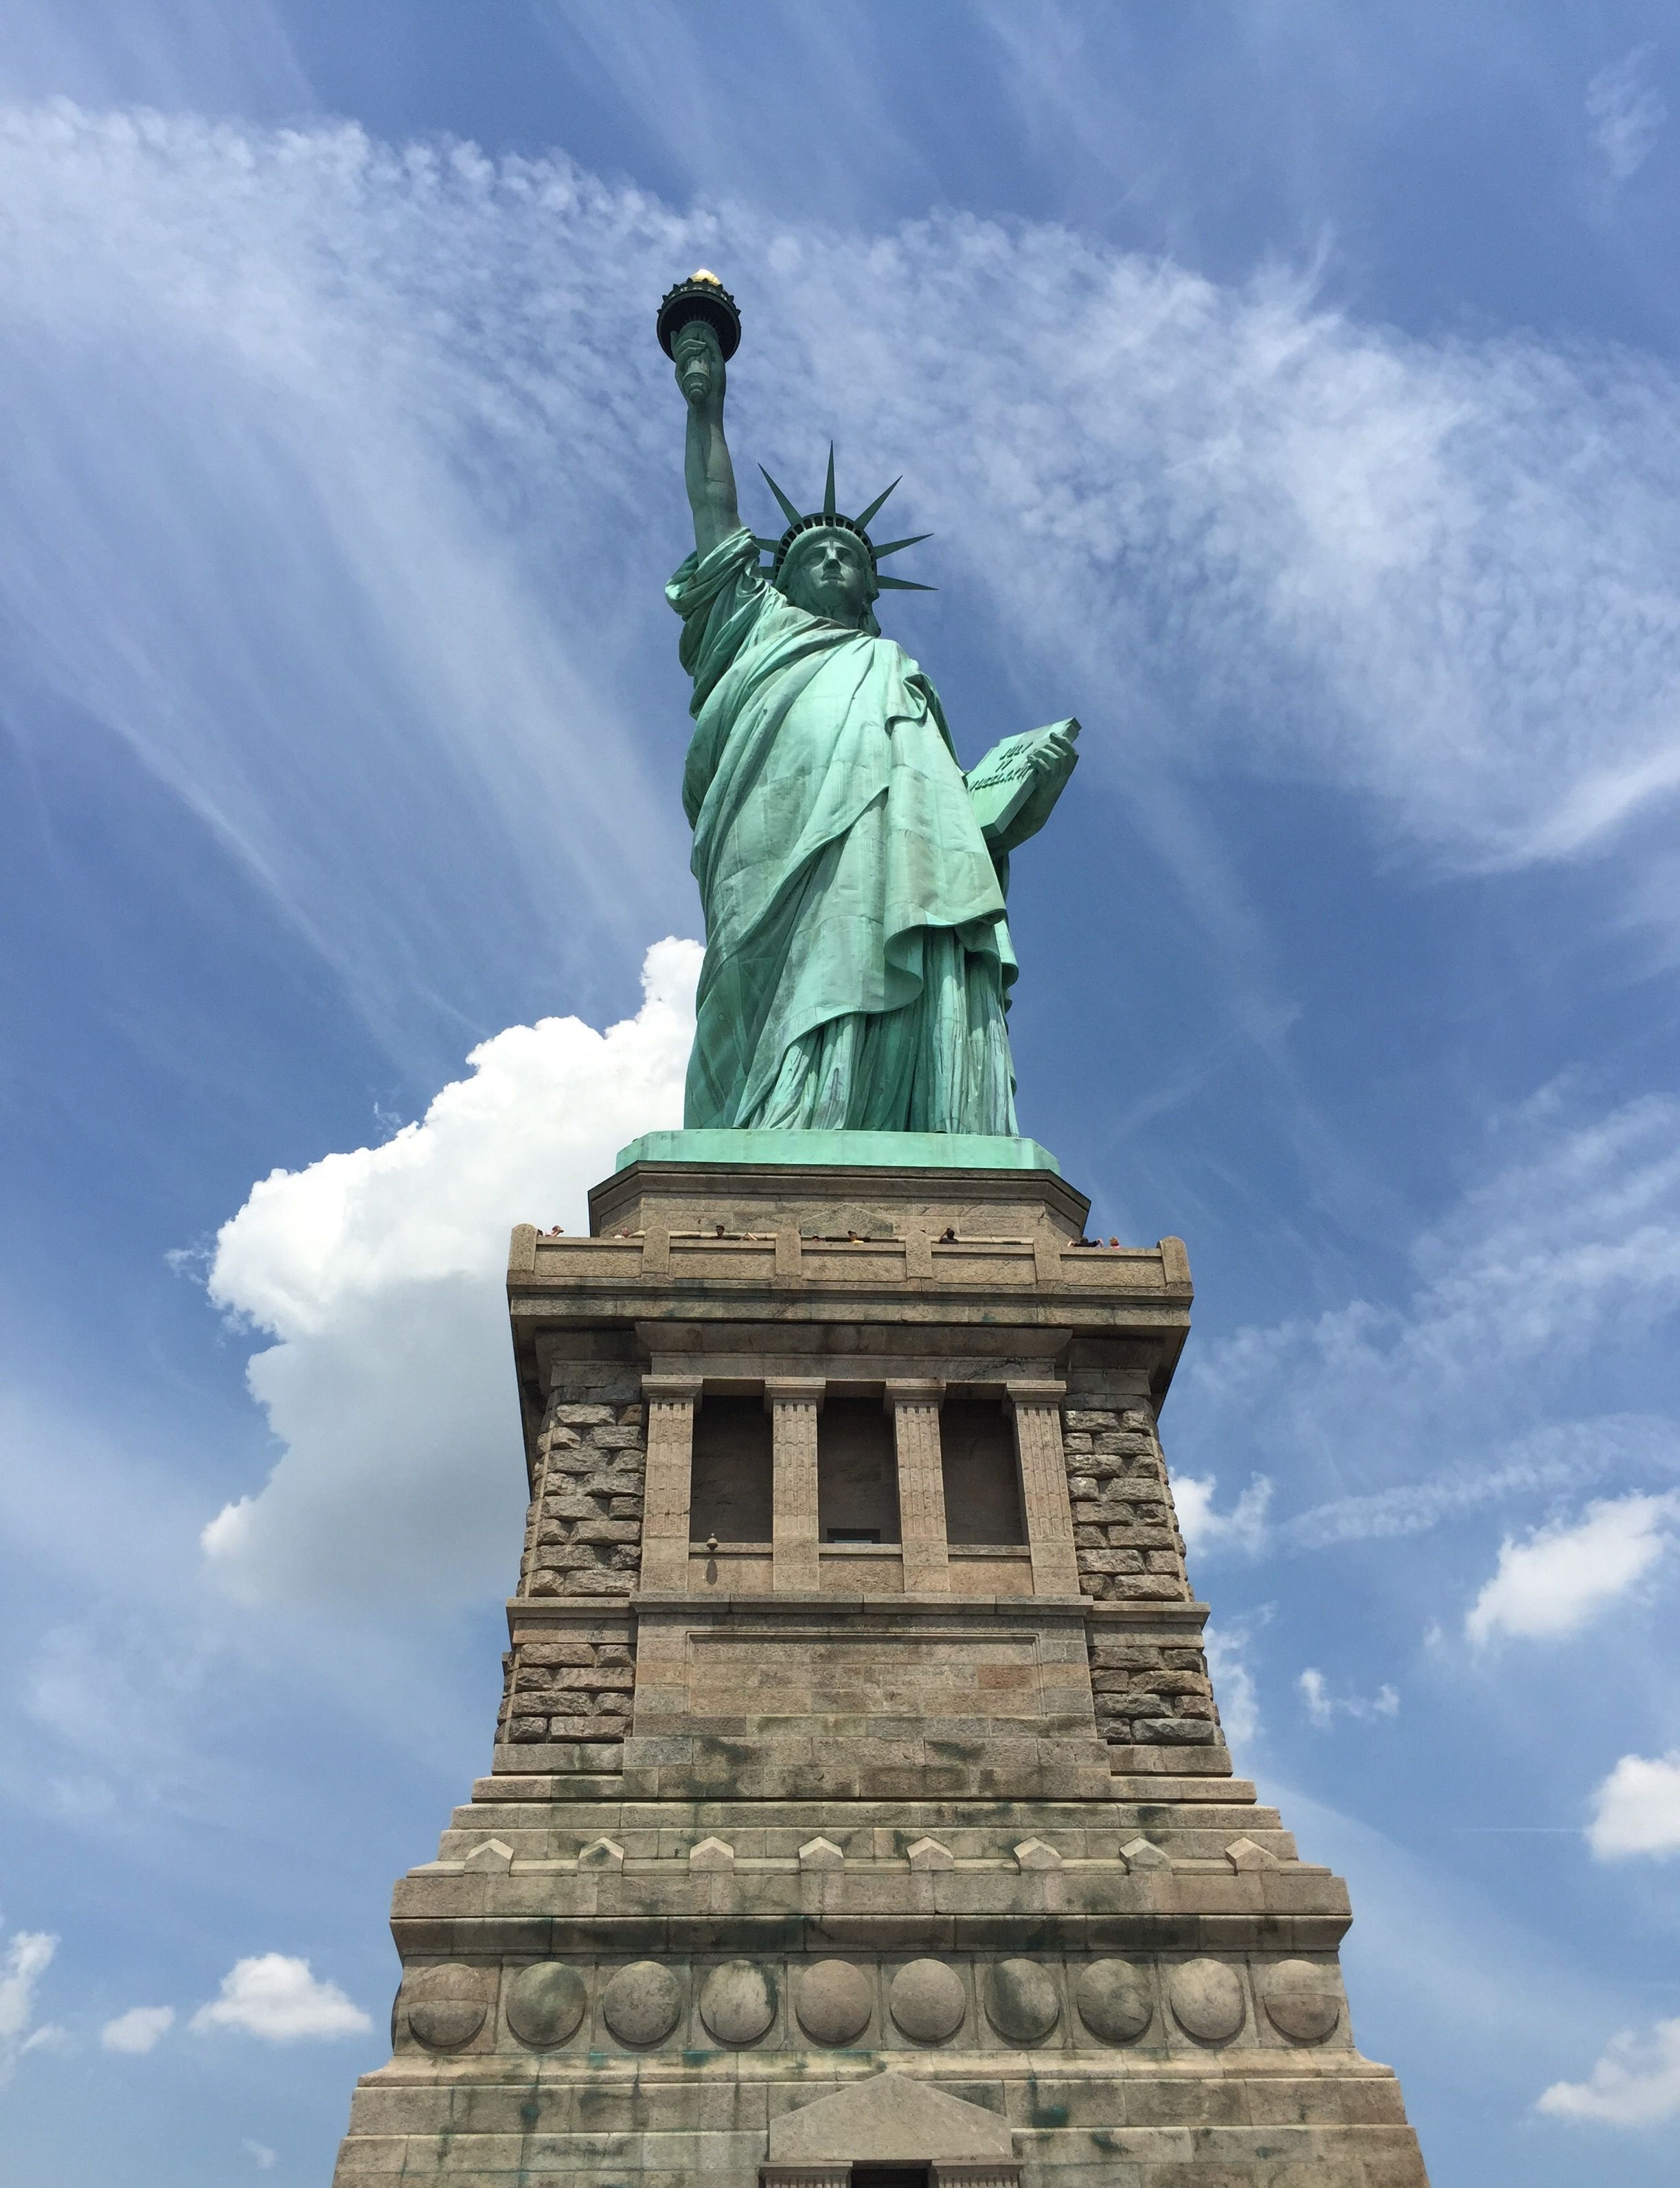 Statue of Liberty, ek